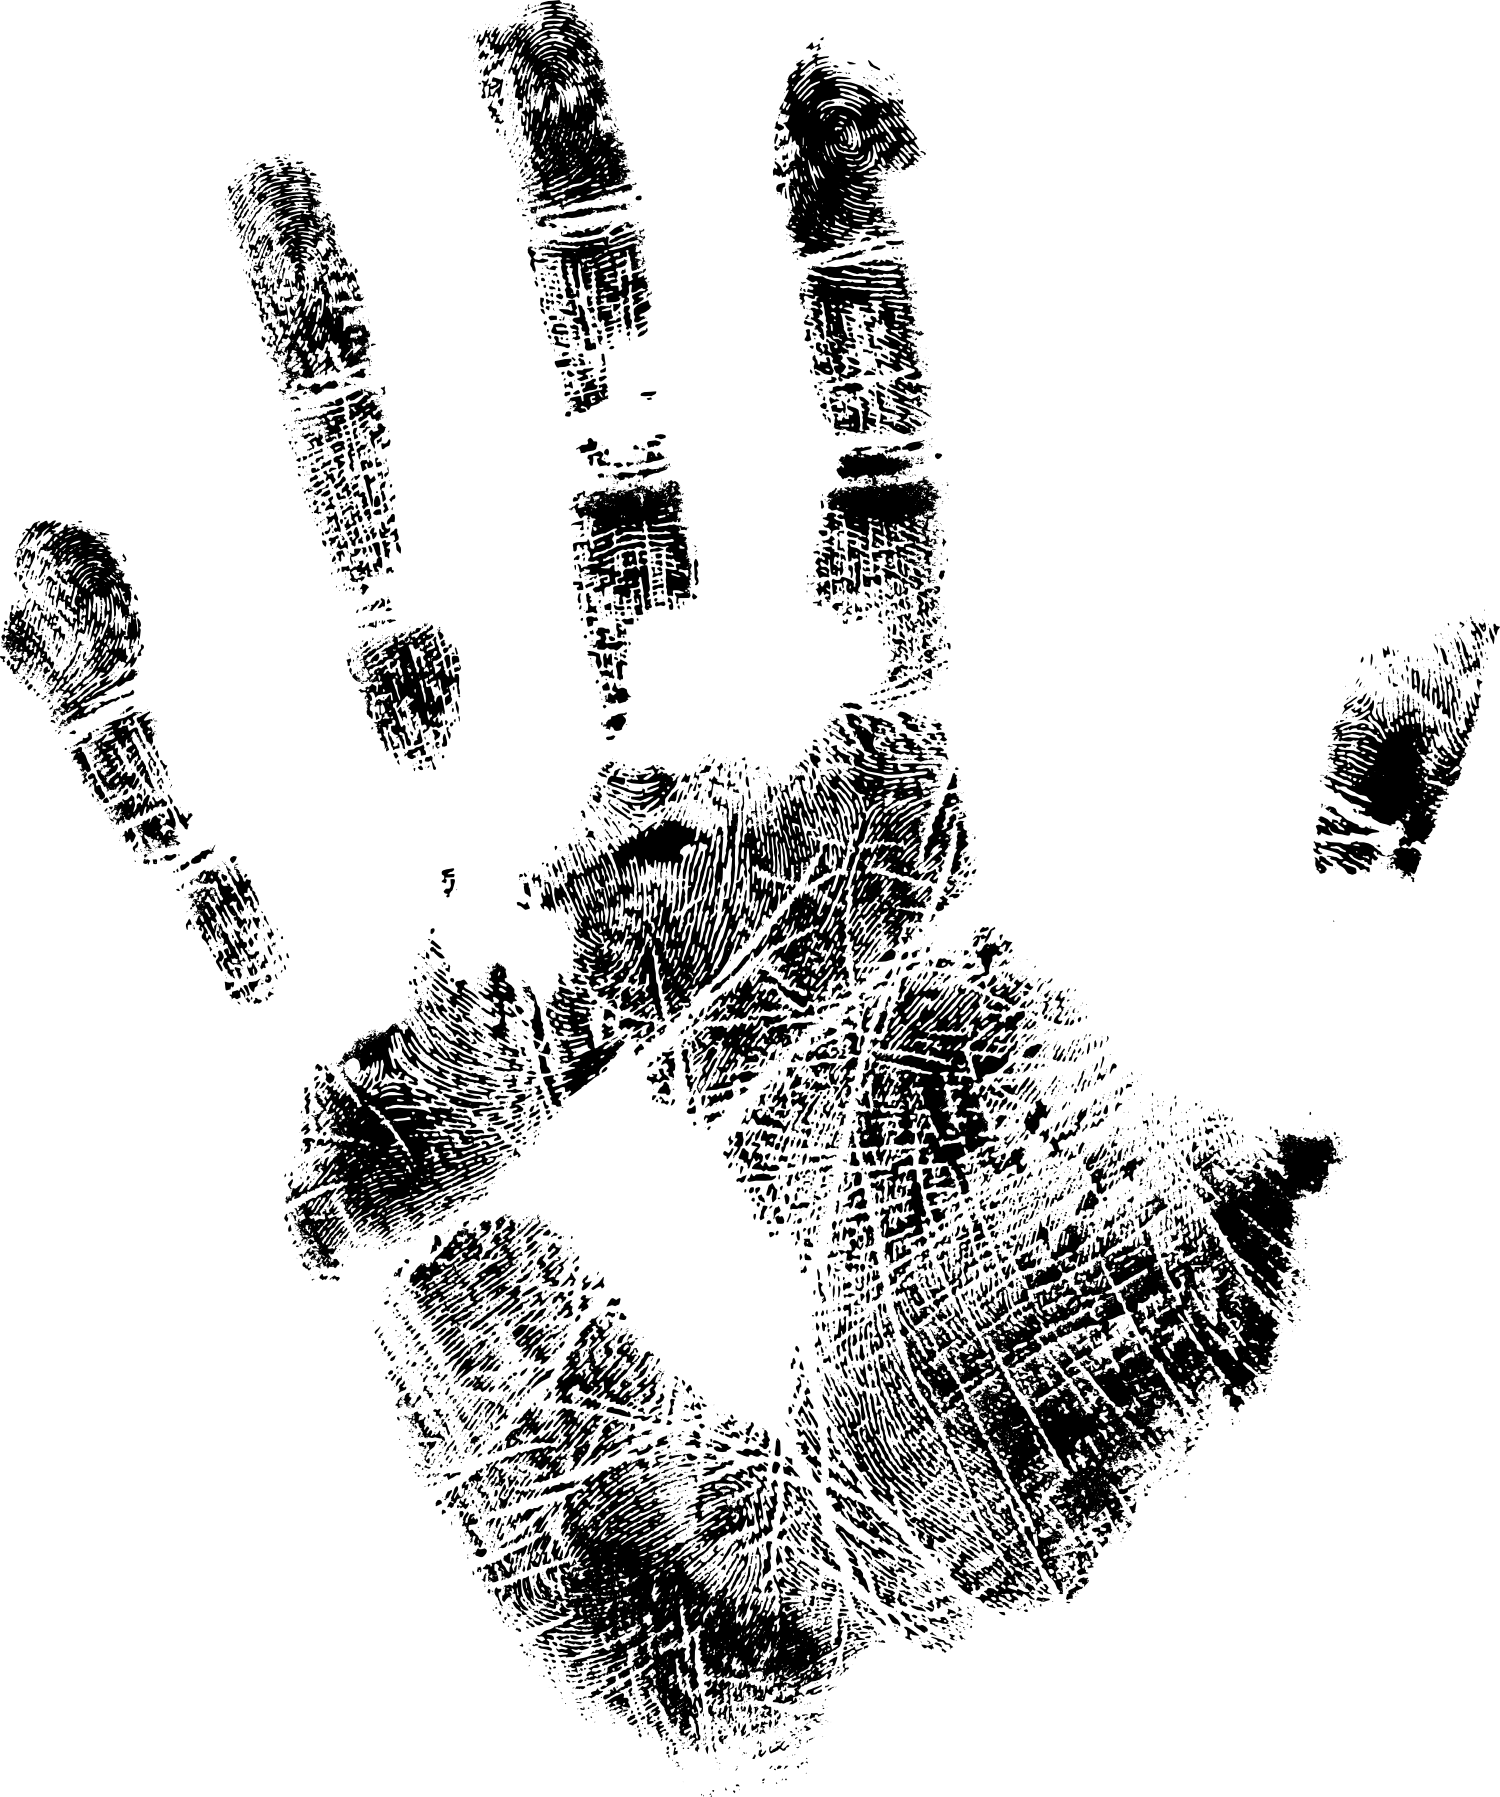 5 Black Handprints (PNG Transparent) | OnlyGFX com